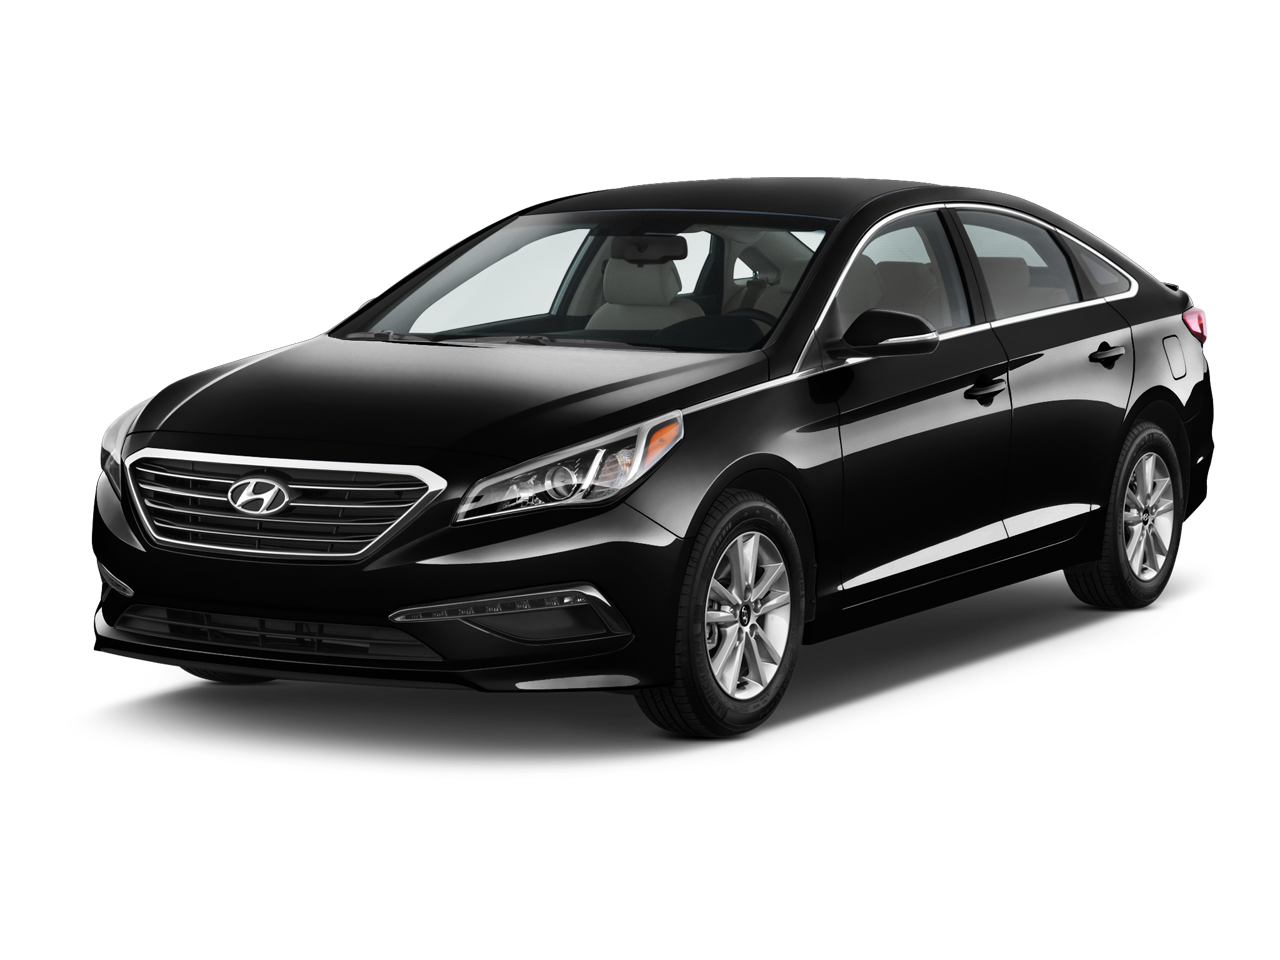 new 2017 hyundai sonata se near framingham ma herb. Black Bedroom Furniture Sets. Home Design Ideas